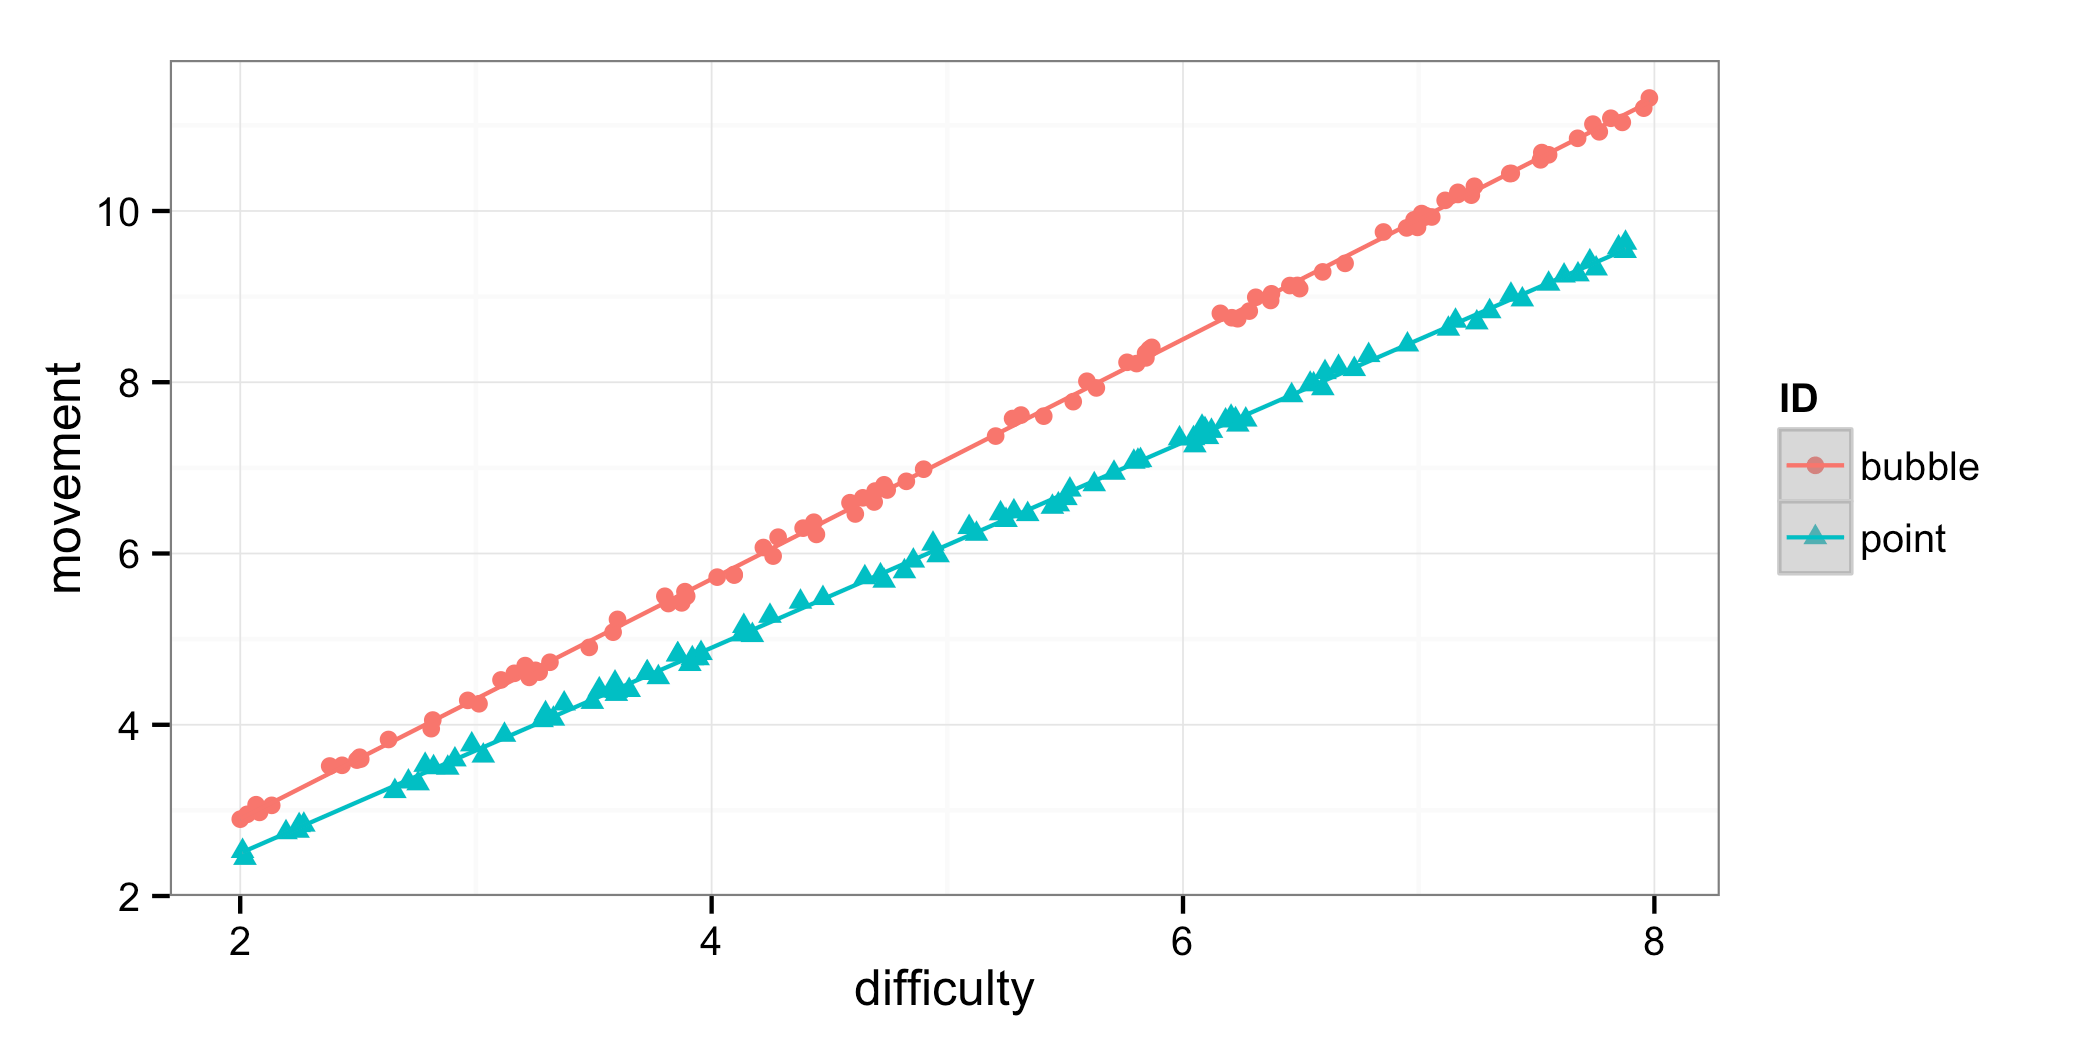 R Using Ggplot To Plot Two Scatter Plots And Regression Lines With Error Bars On Same Plot